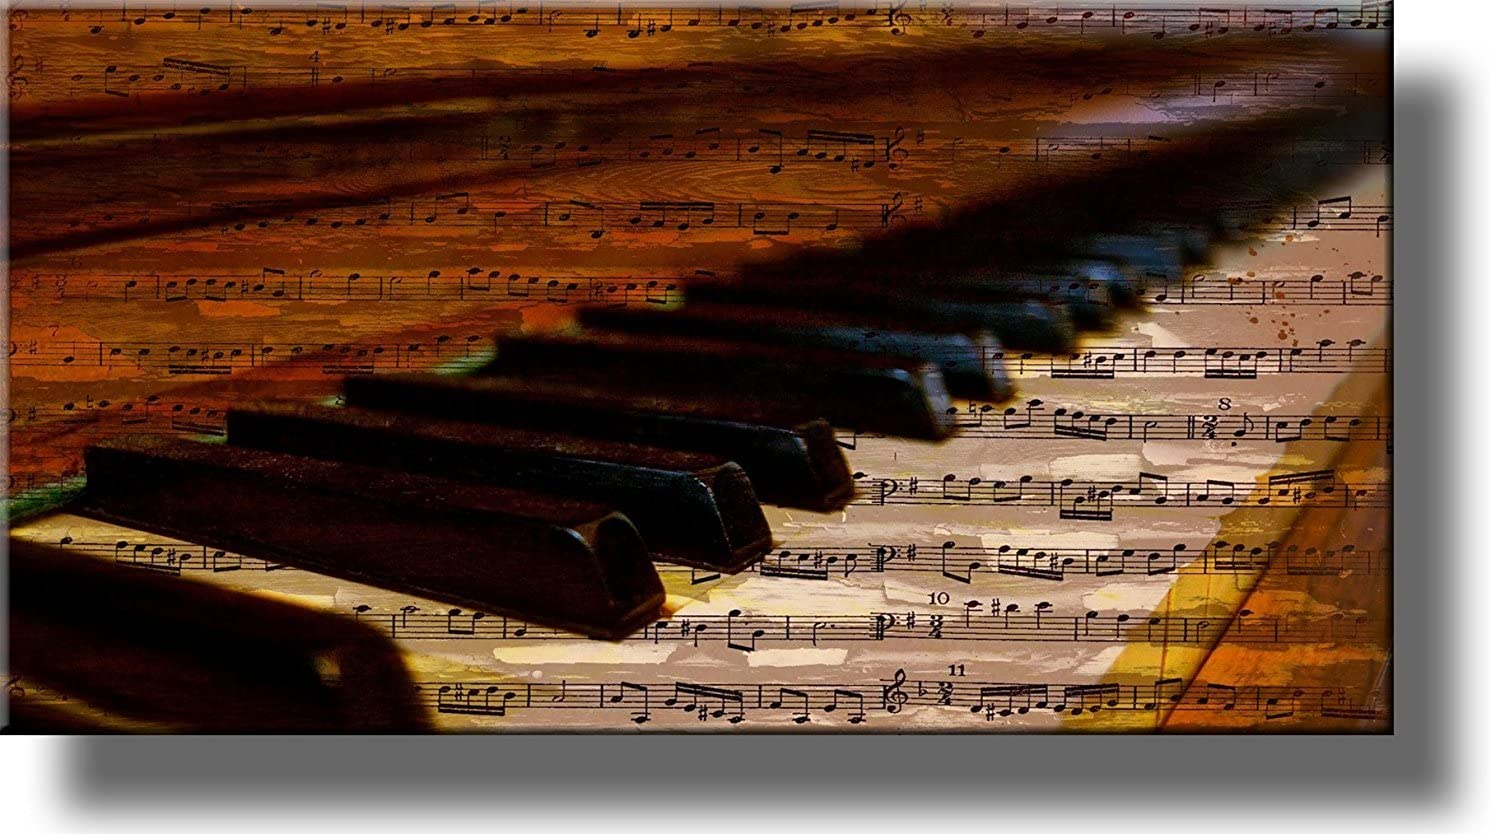 Piano Music Notes Vintage Picture on Stretched Canvas Wall Art Décor, Ready to Hang!